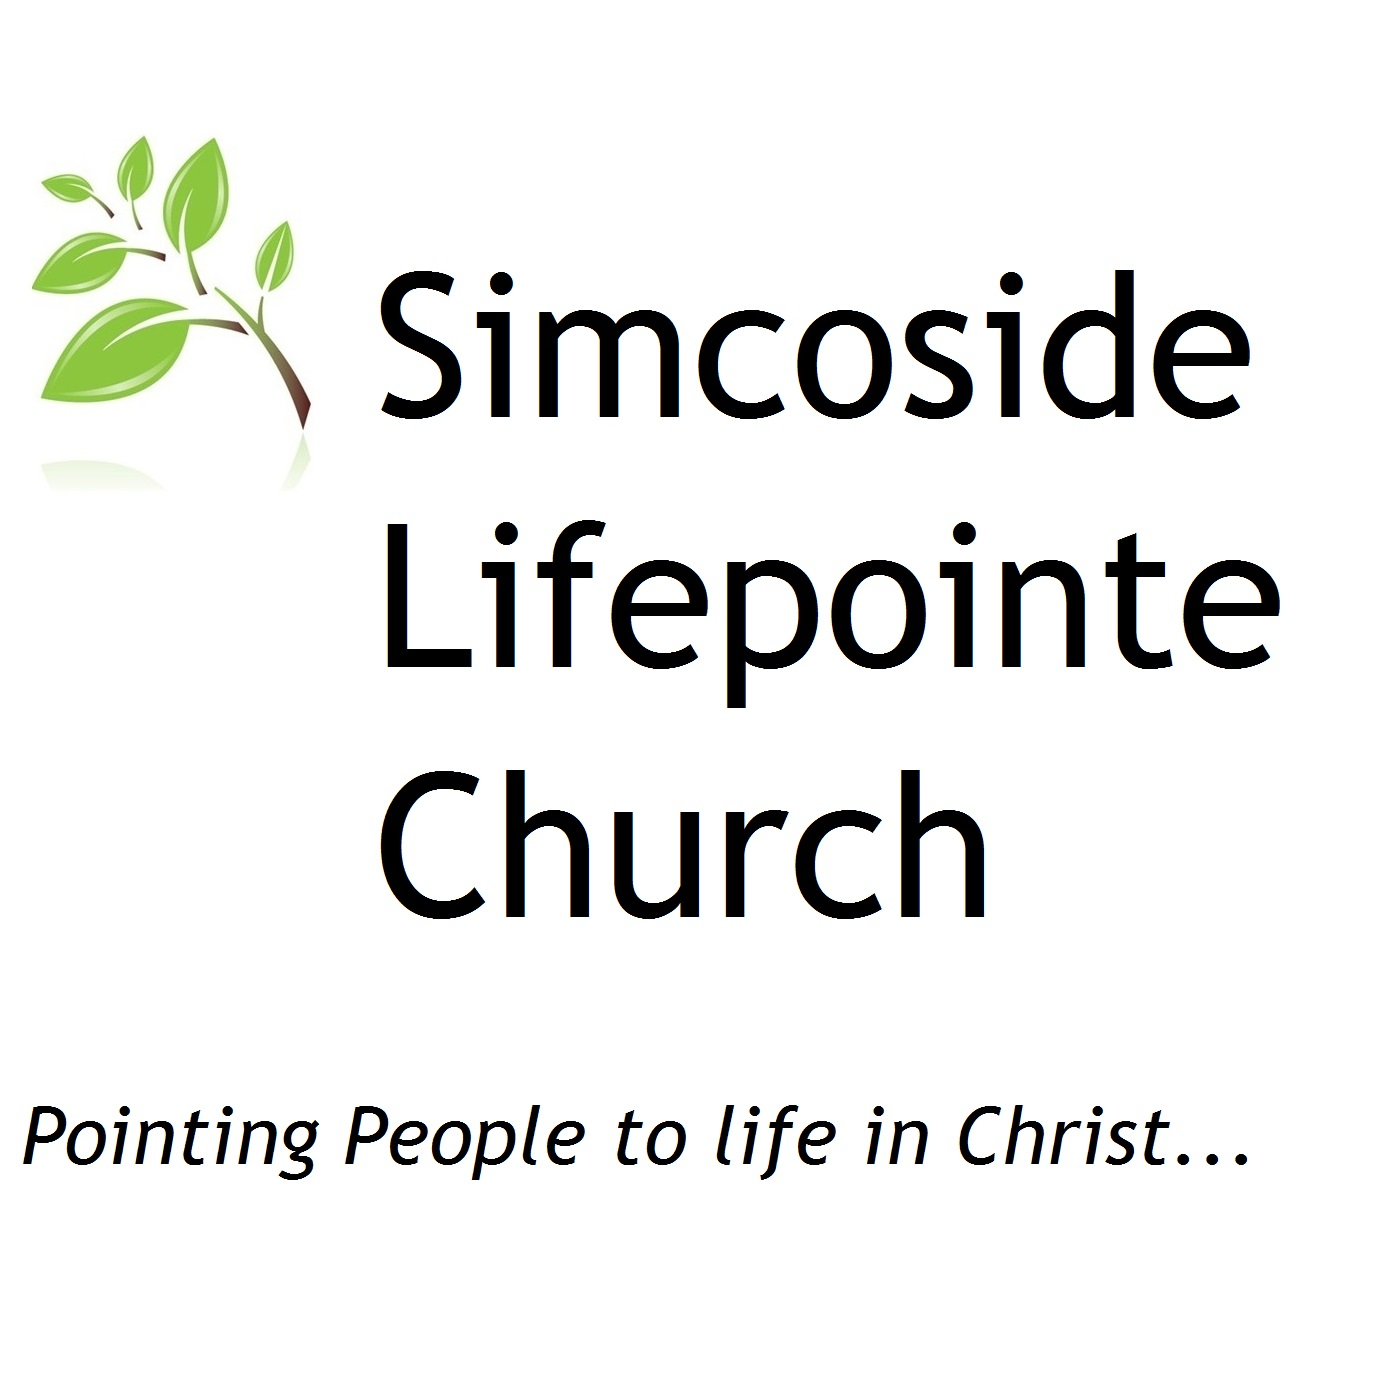 Simcoside Lifepointe Church